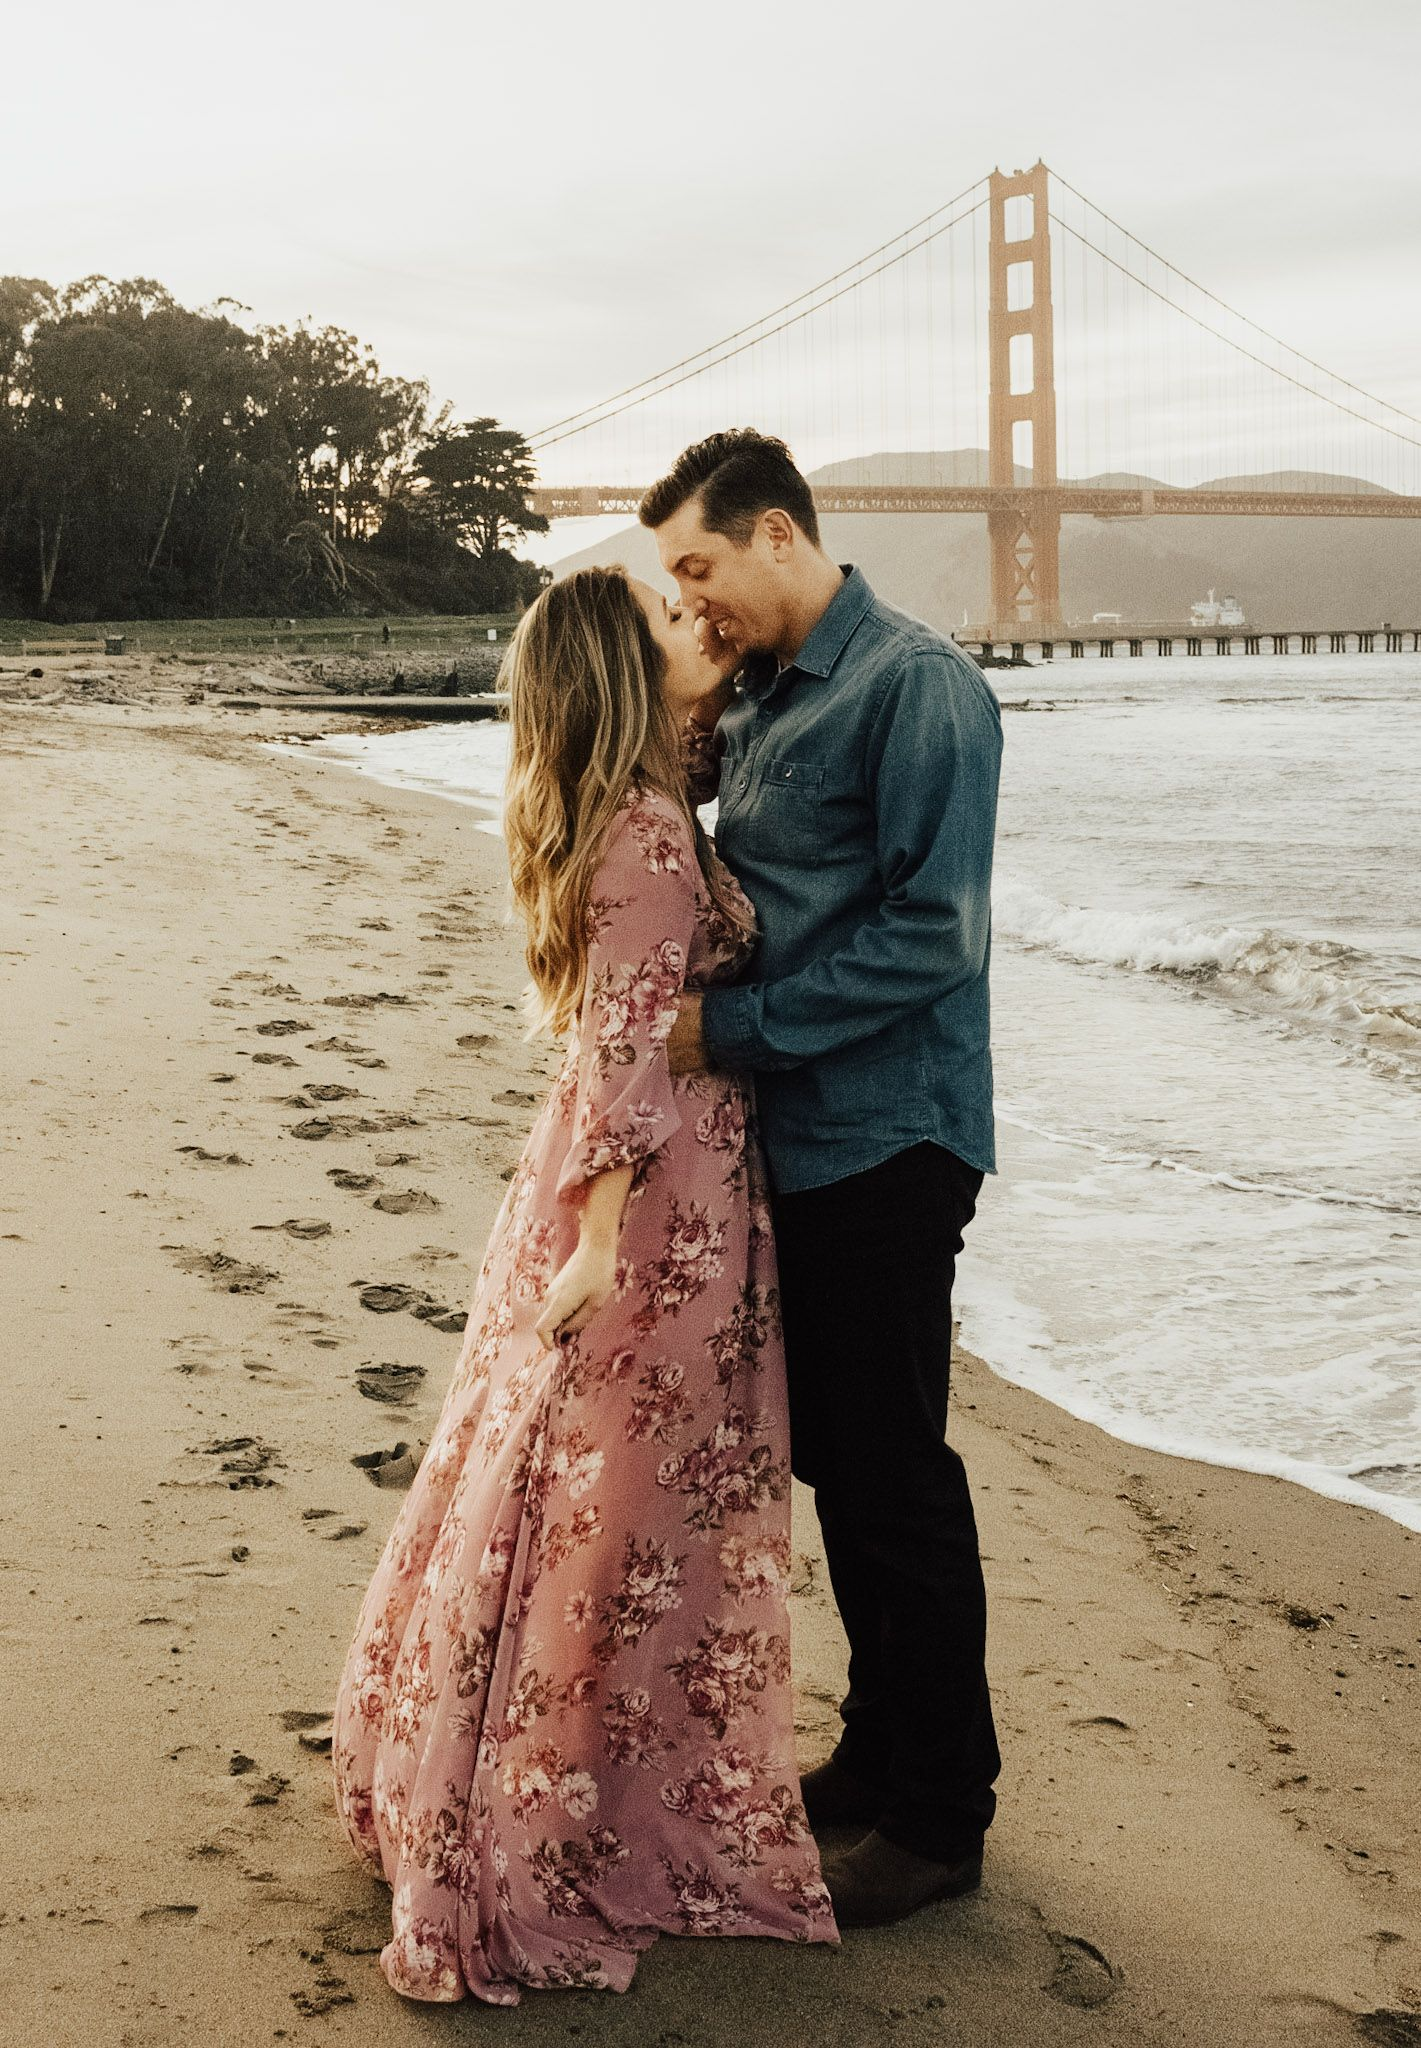 Photo Shoot In San Francisco Floral Maxi Dress Engagement Session Engagement Photo Outfit Lon Engagement Photoshoot Couple Outfits Couple Photography Poses [ 2048 x 1421 Pixel ]